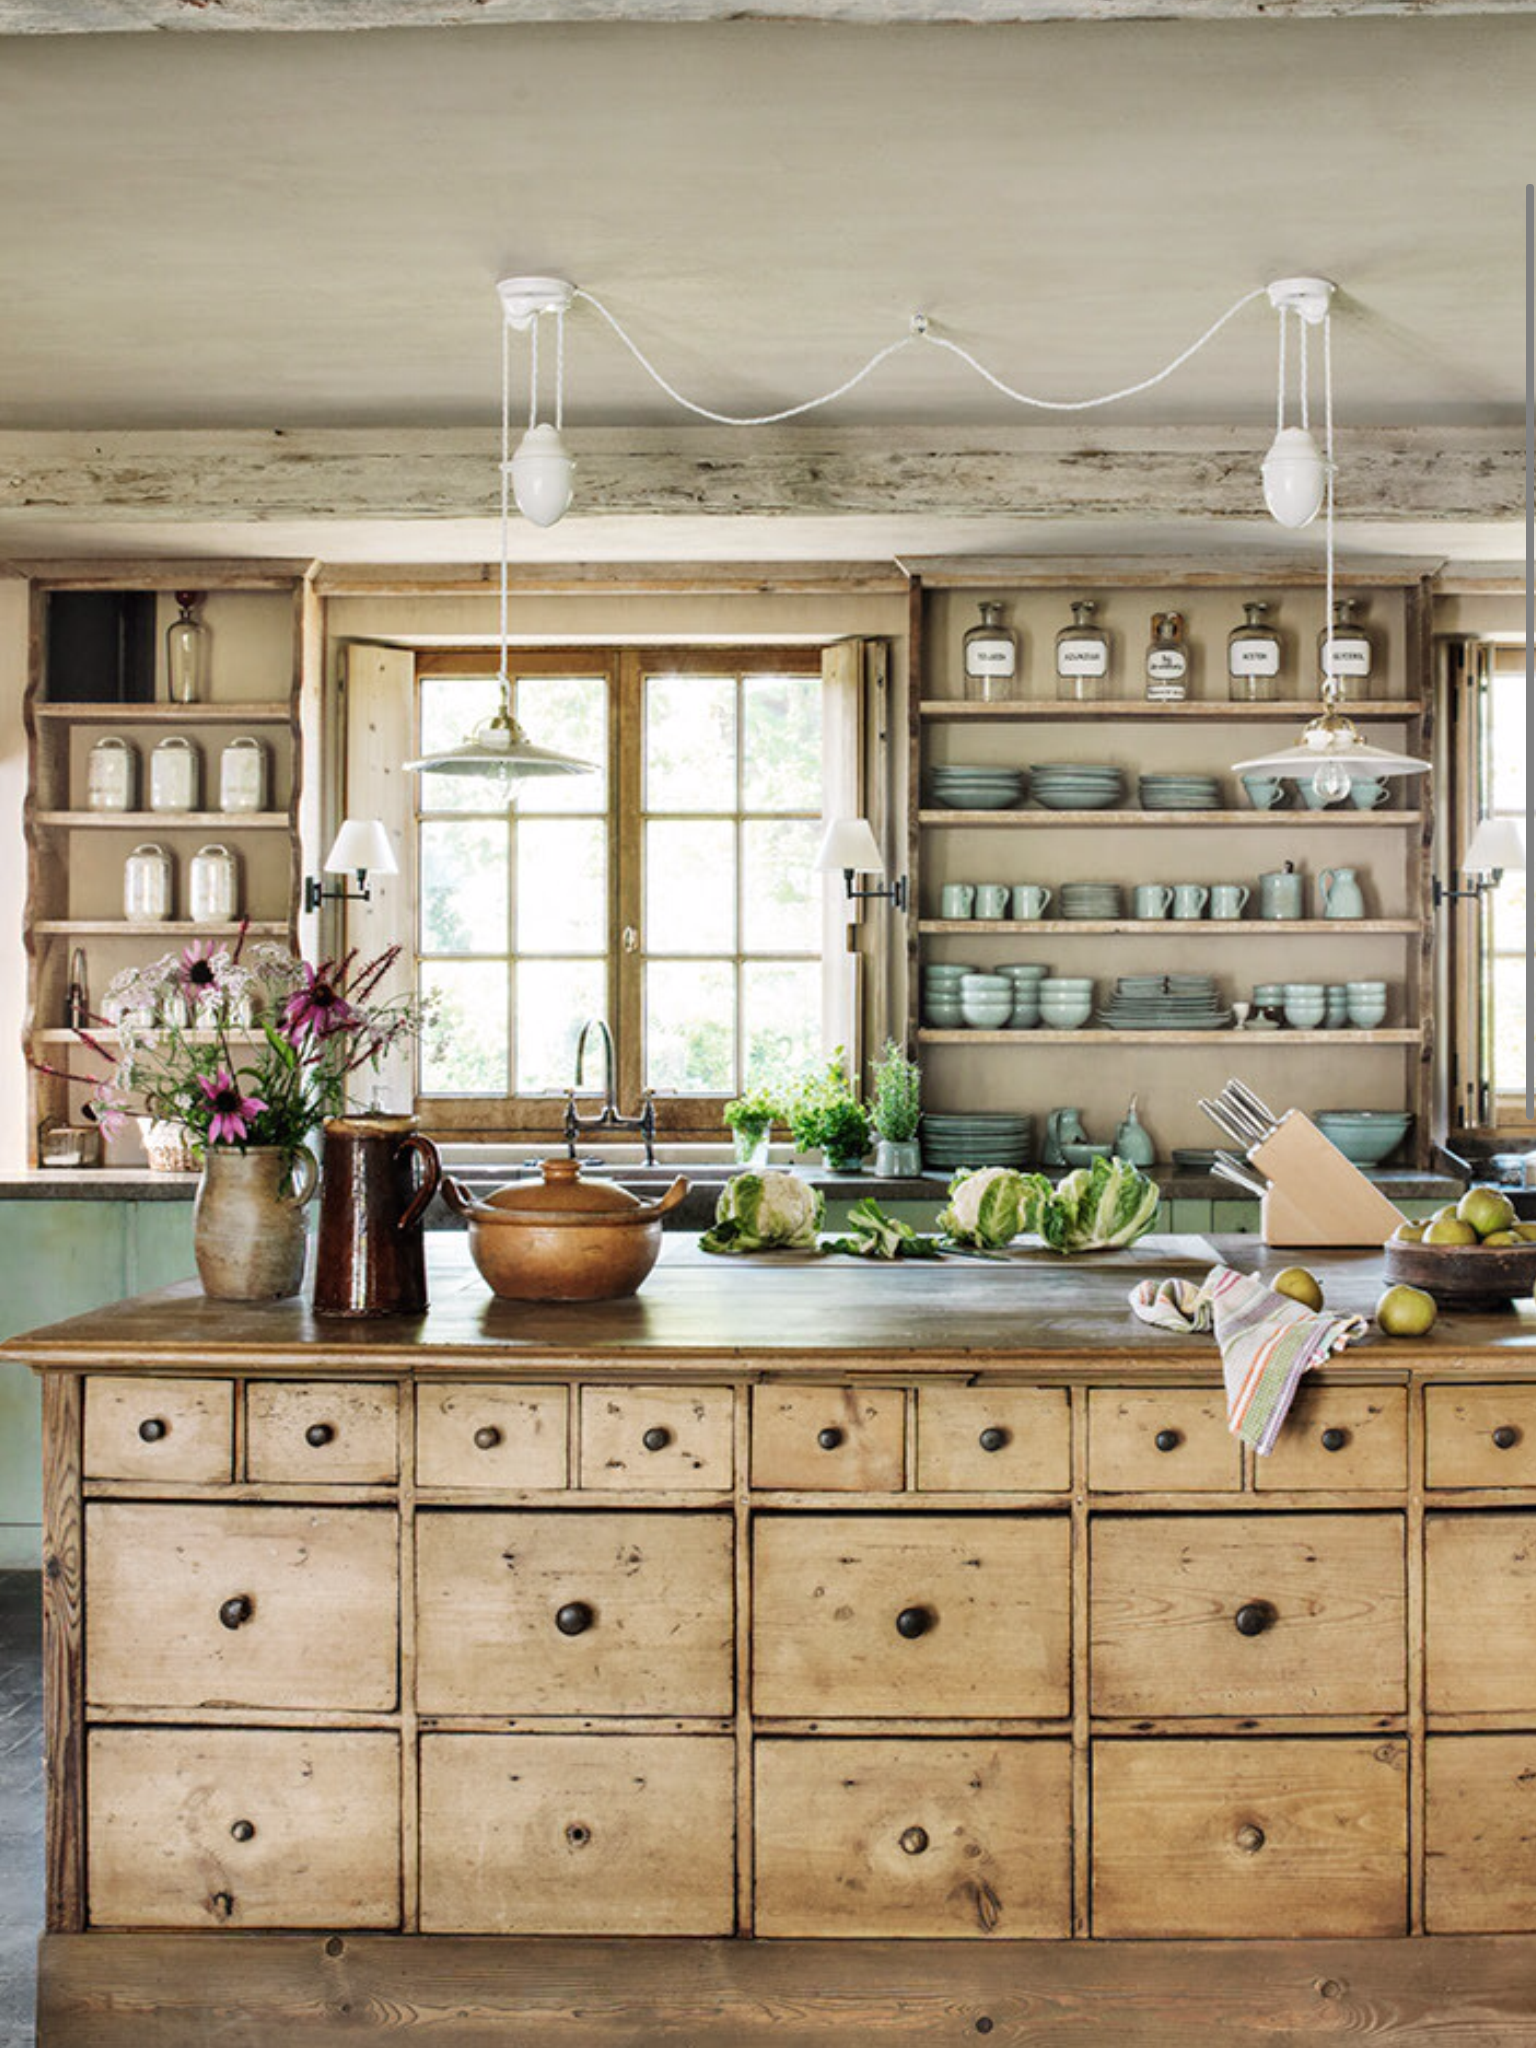 Antique apothecary cabinets kitchen decor colors moodboard